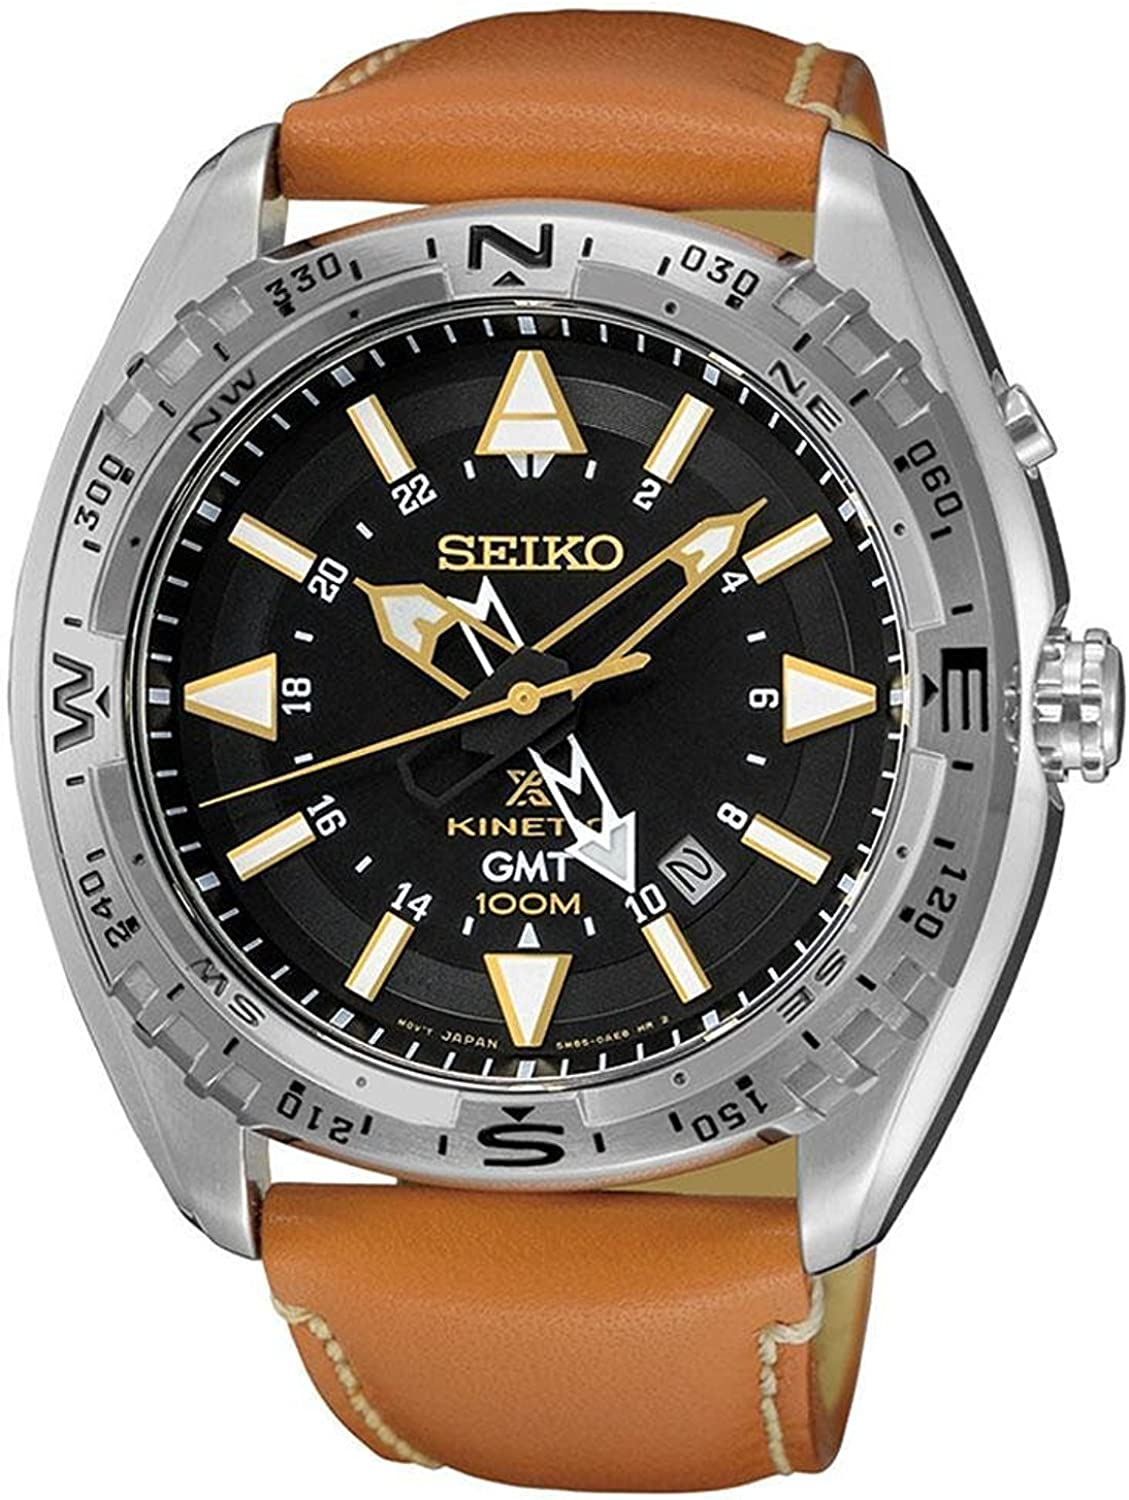 Seiko Men s Prospex Kinetic GMT